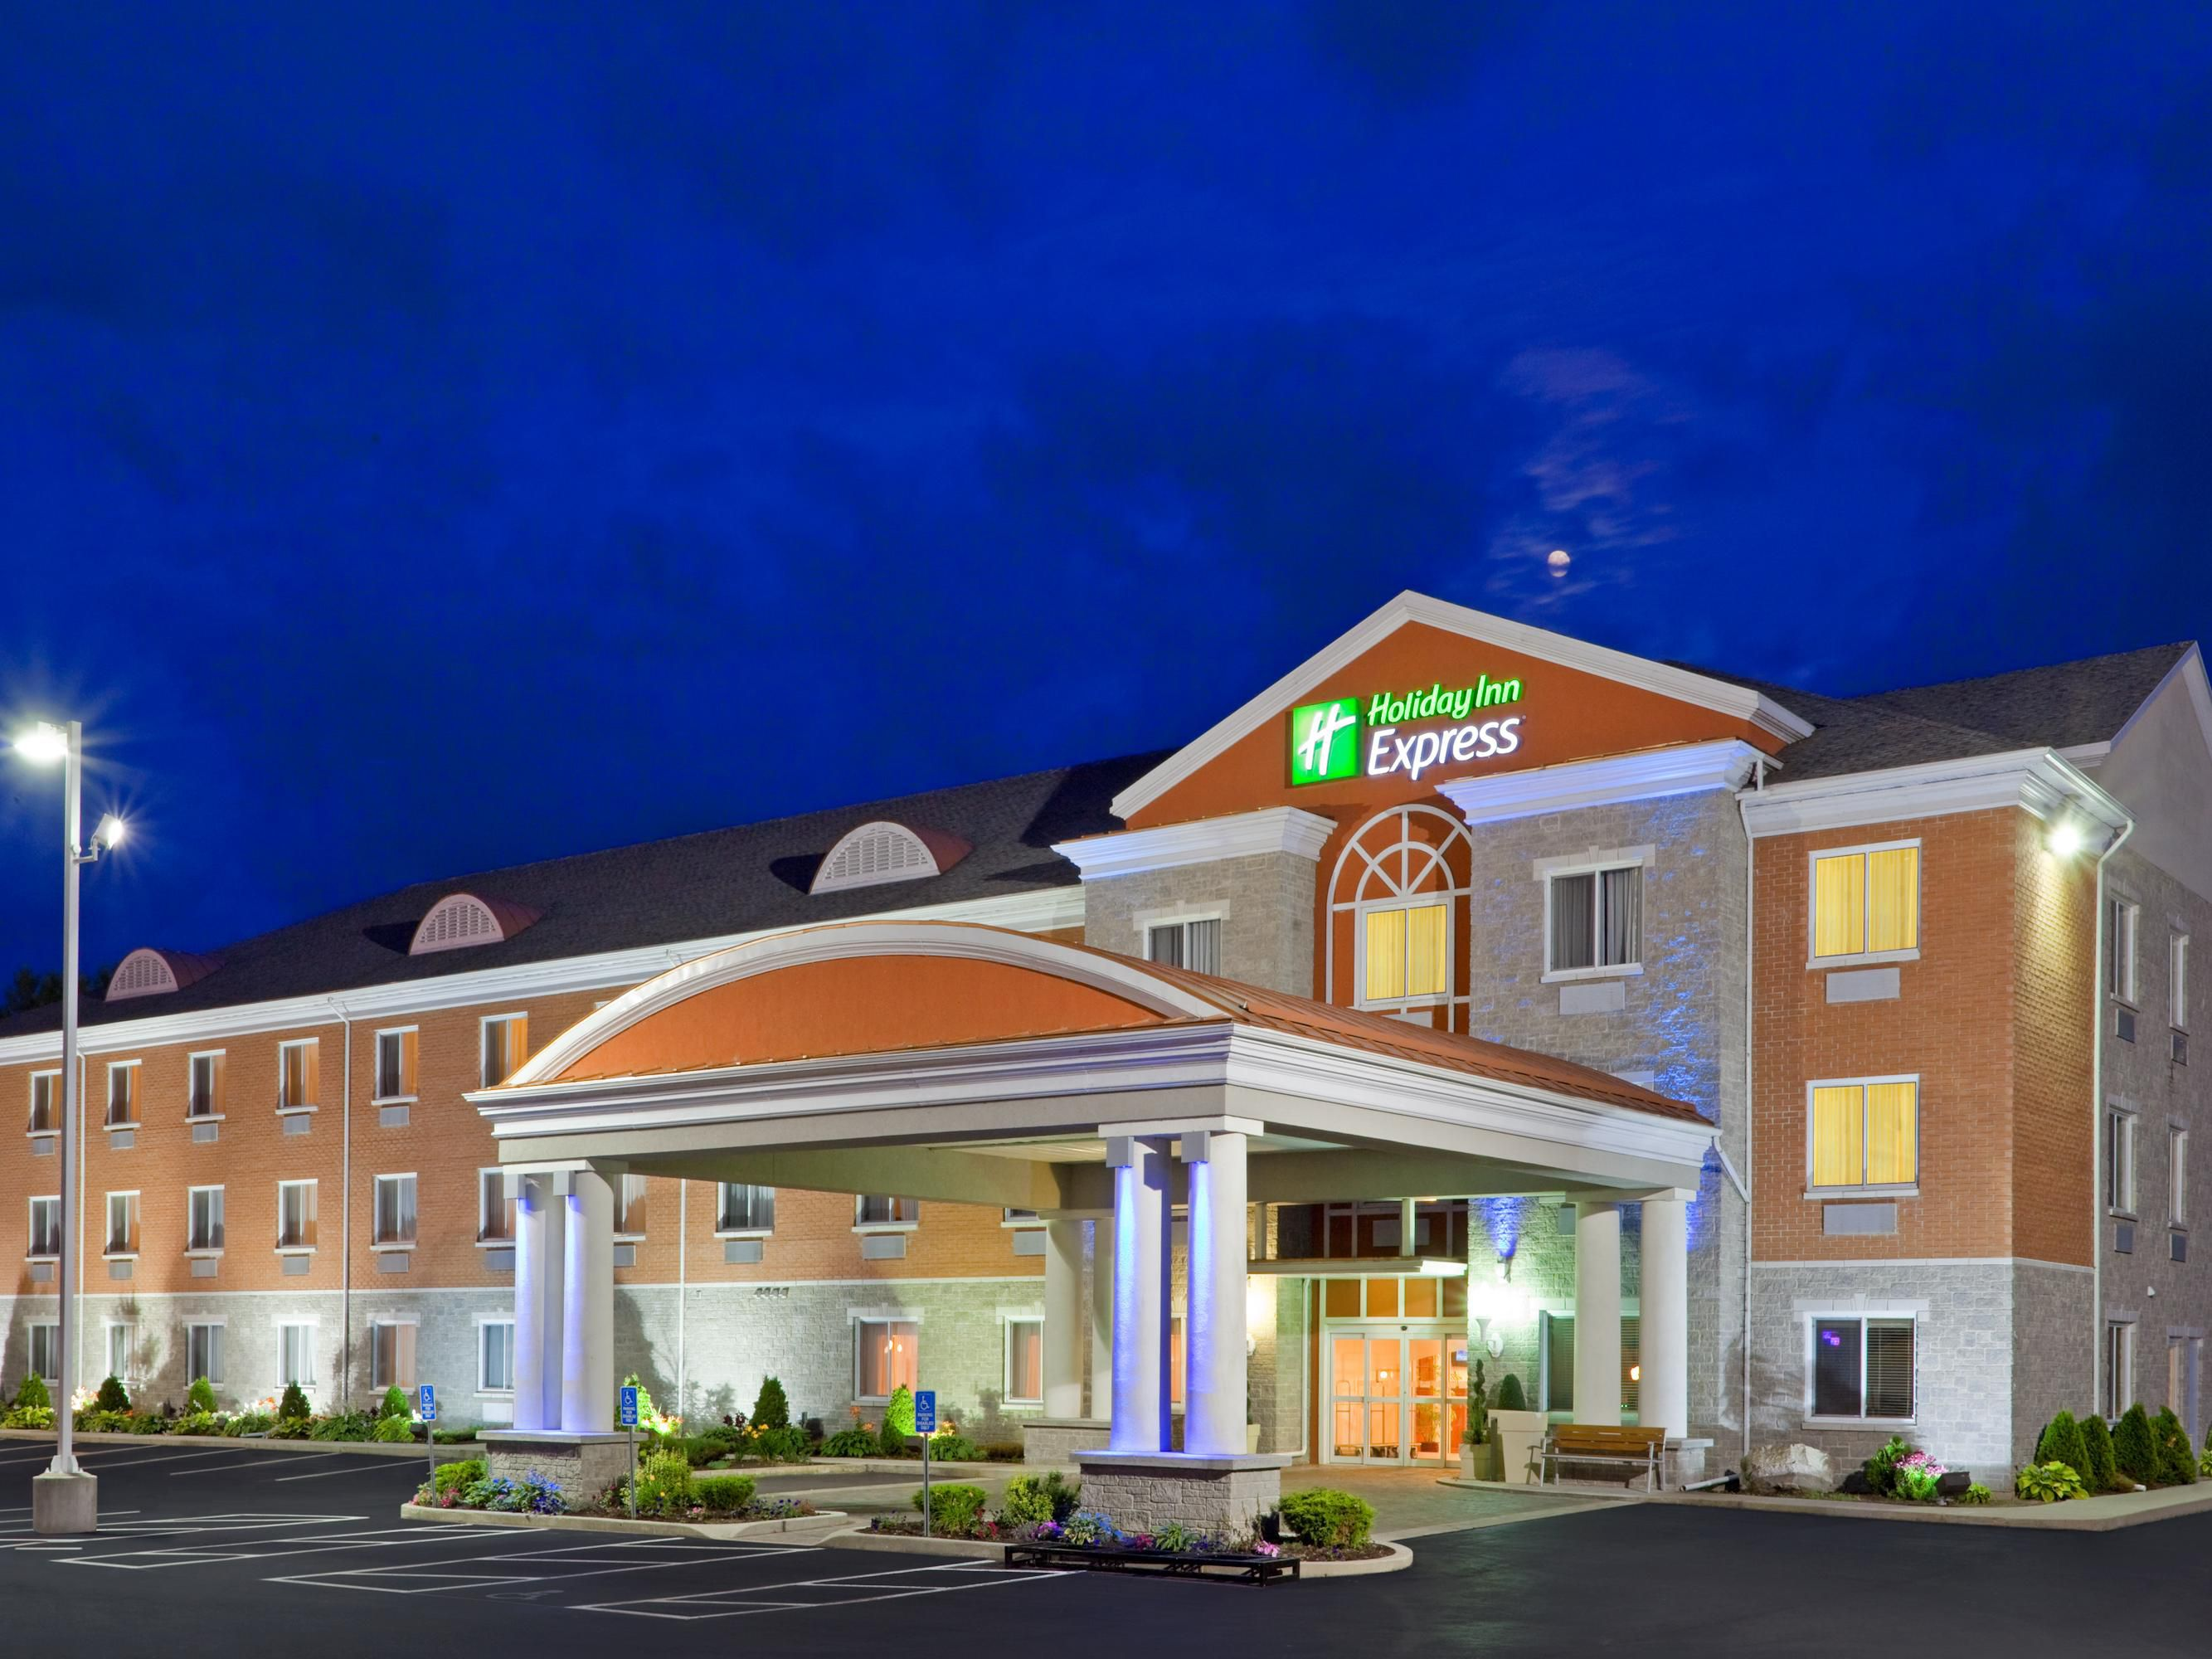 Holiday Inn Express Suites 1000 Islands